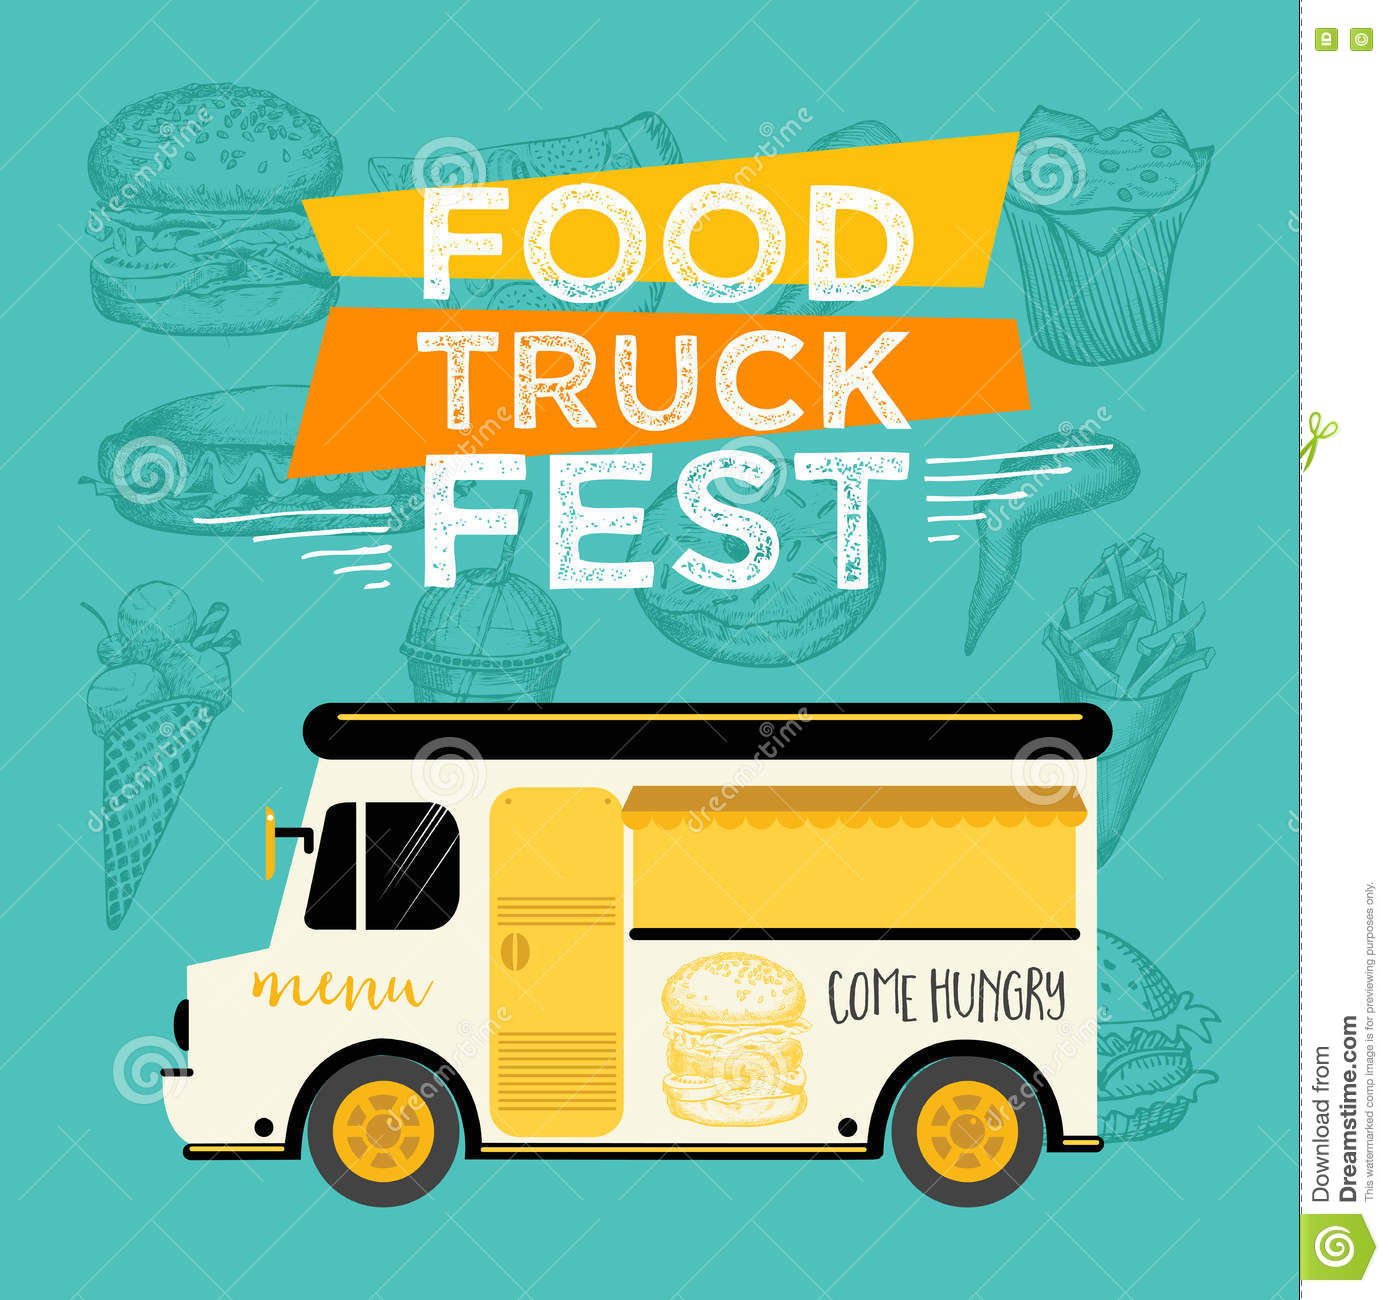 Food Truck Party Invitation Menu Template Design Fly Stock Photos